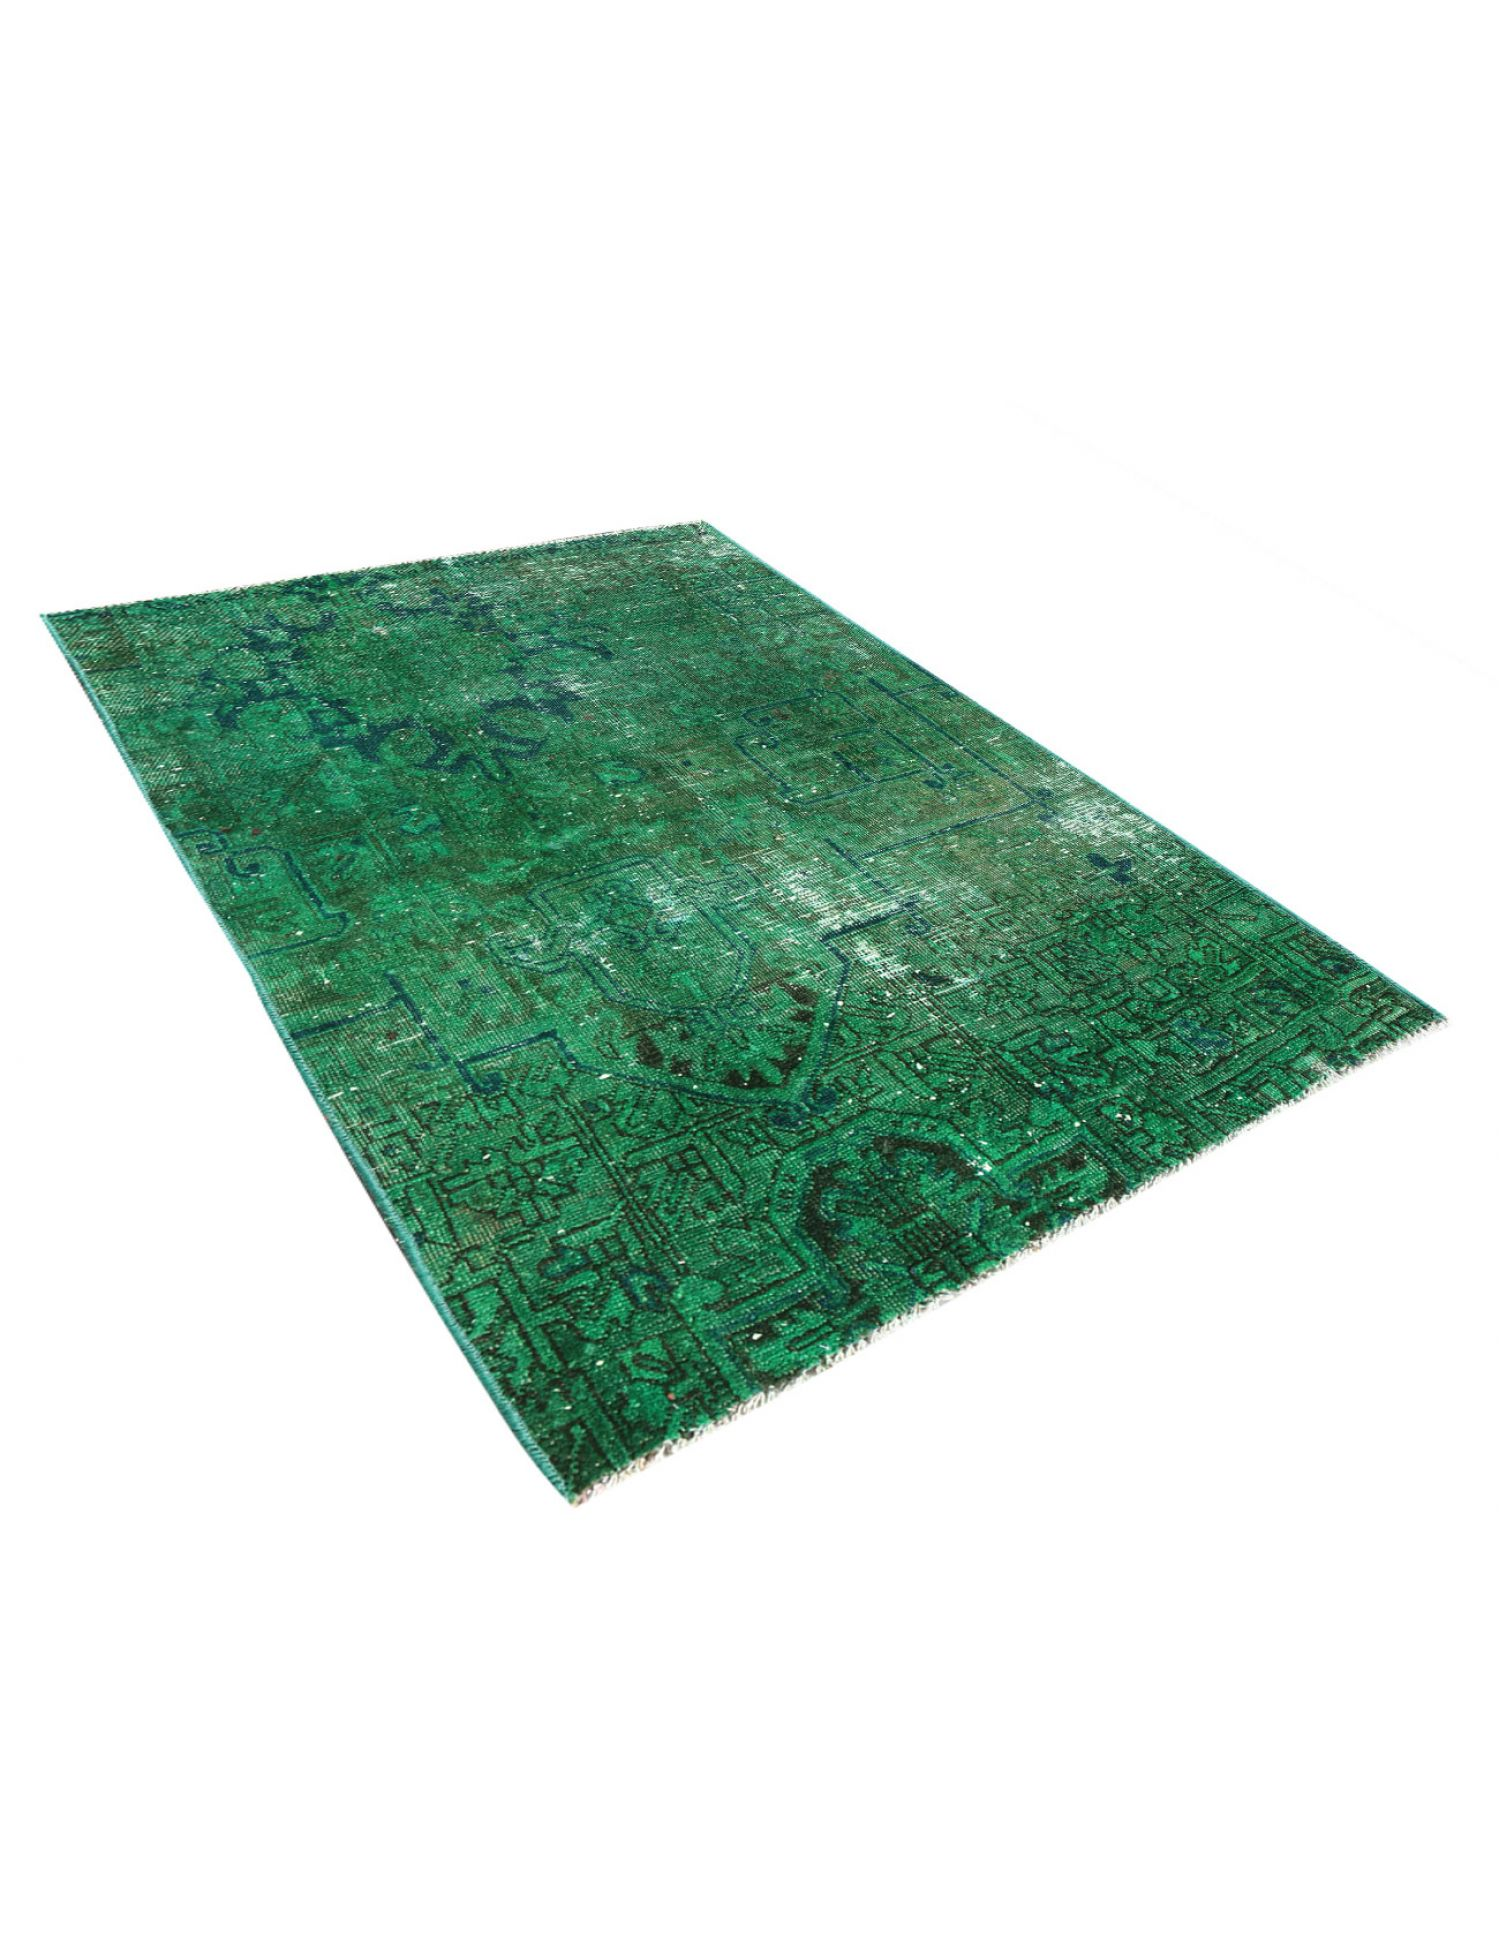 Vintage Carpet  green <br/>166 x 119 cm